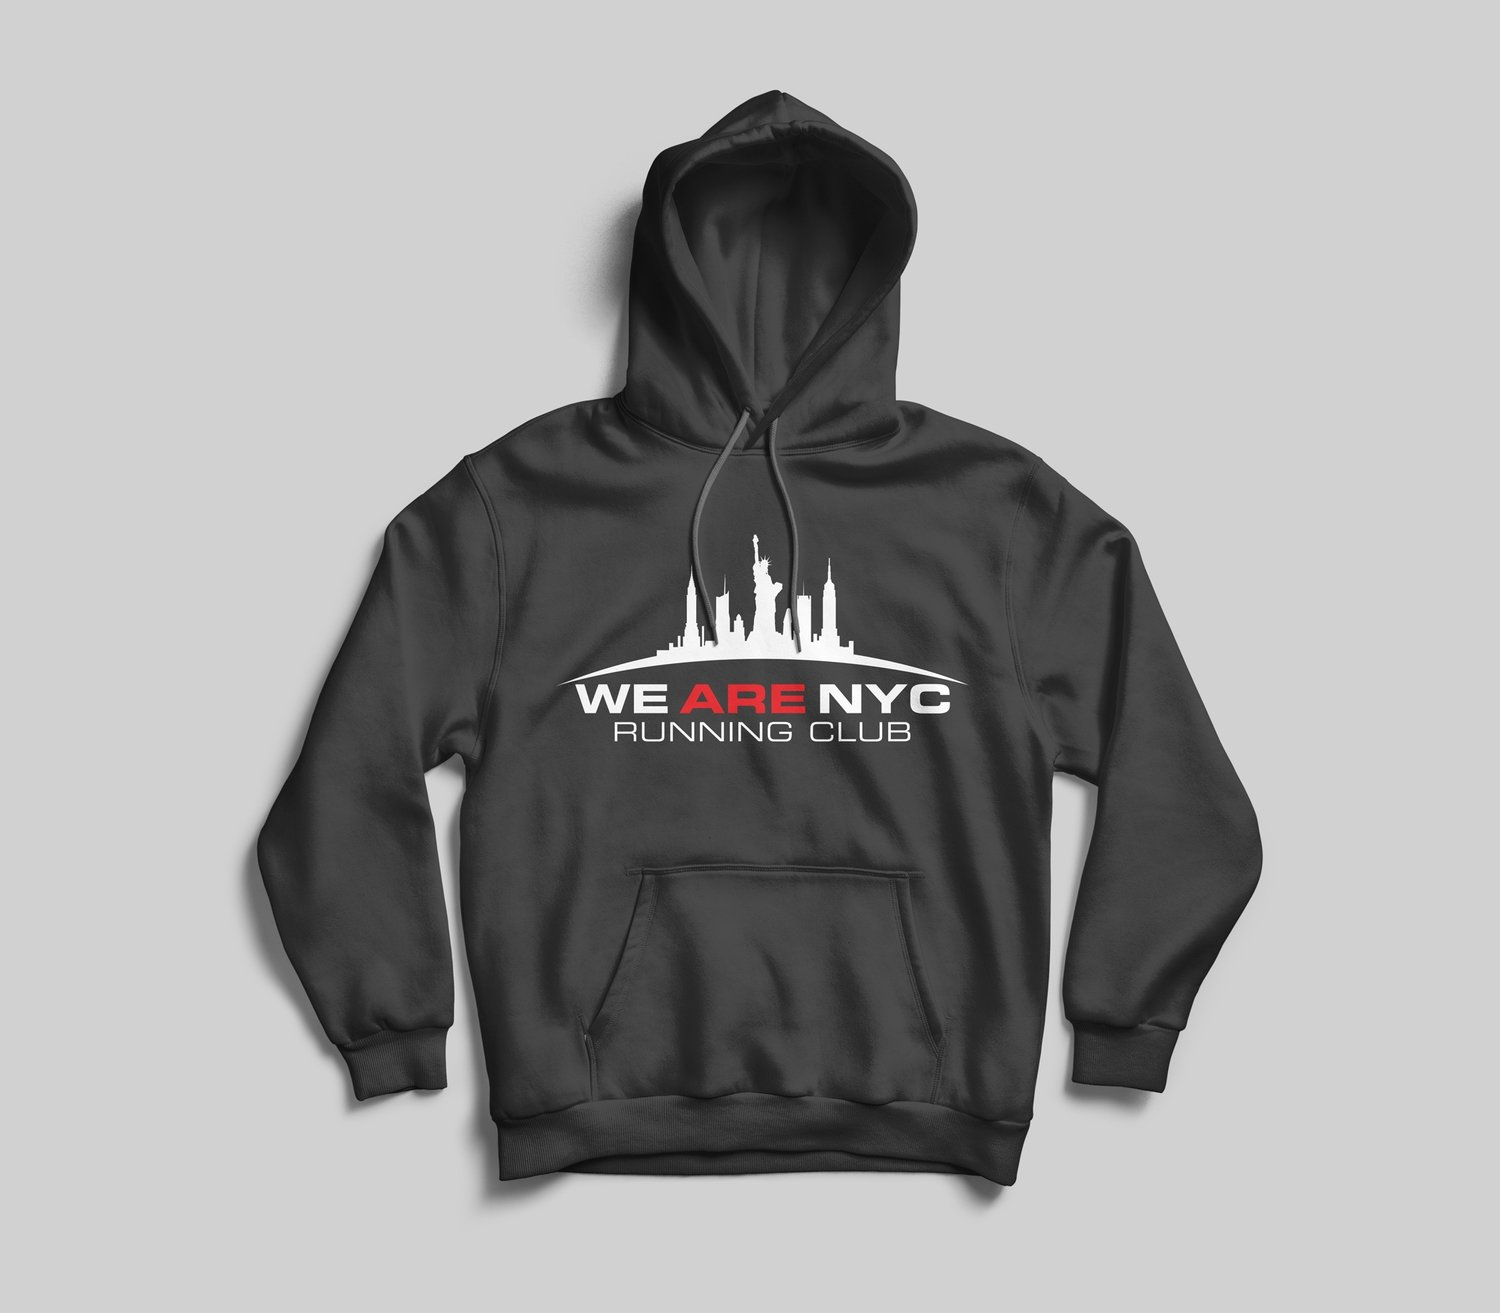 *YOUTH* WE ARE NYC OFFICIAL LOGO HOODED SWEATSHIRT - AVAILABLE IN 6 COLORS!